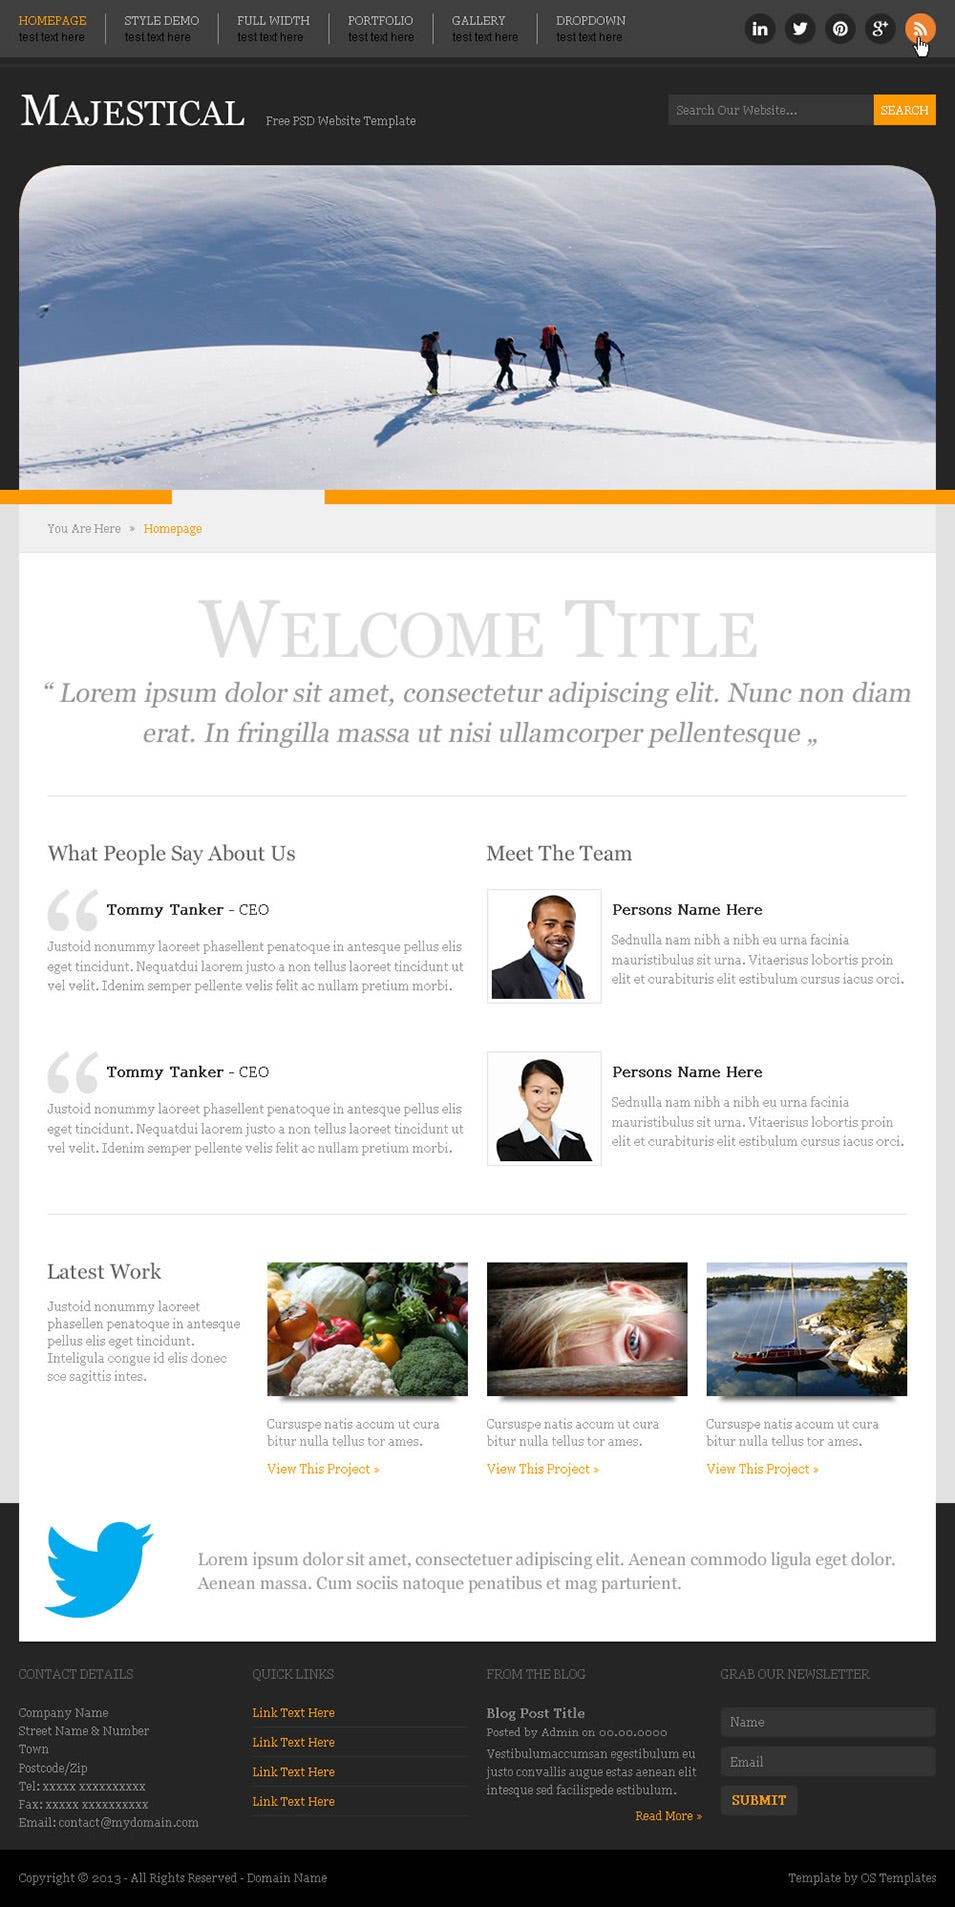 majestical free psd website template